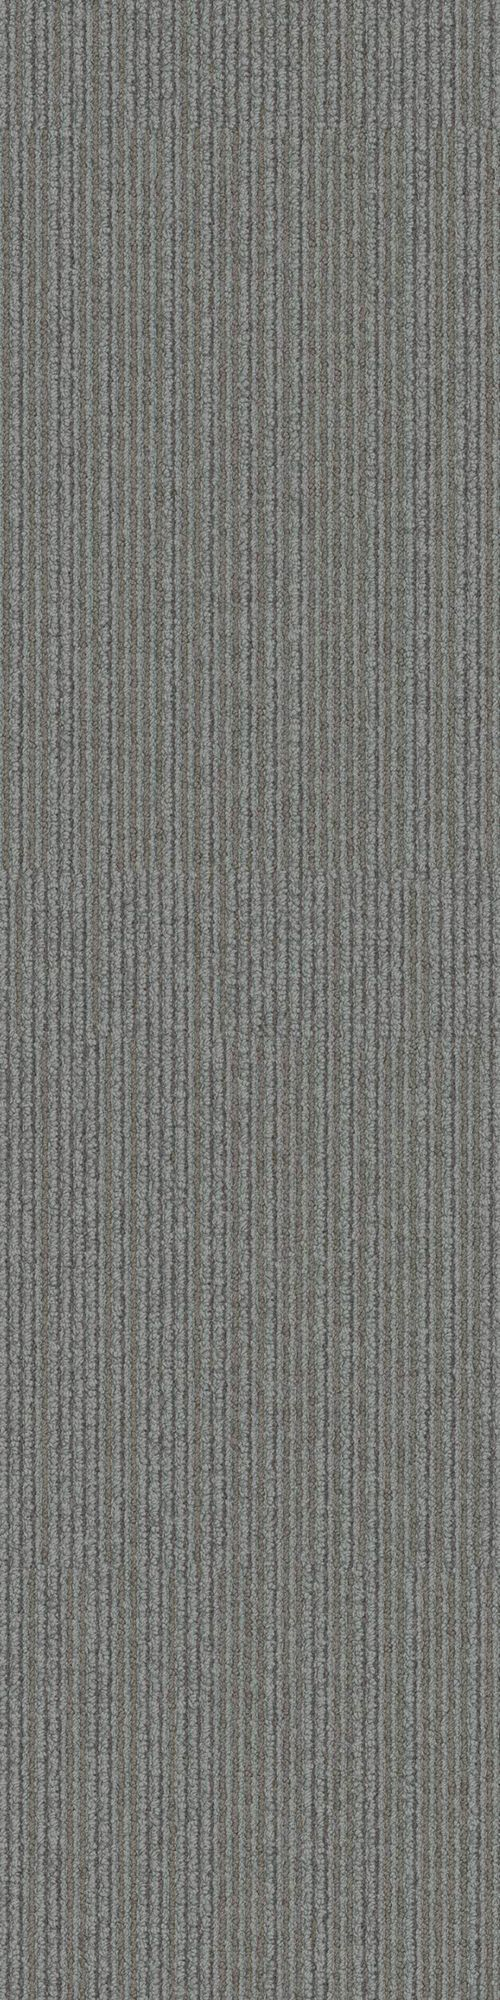 Interface carpet tile: On Line Color name: Stone Variant 2